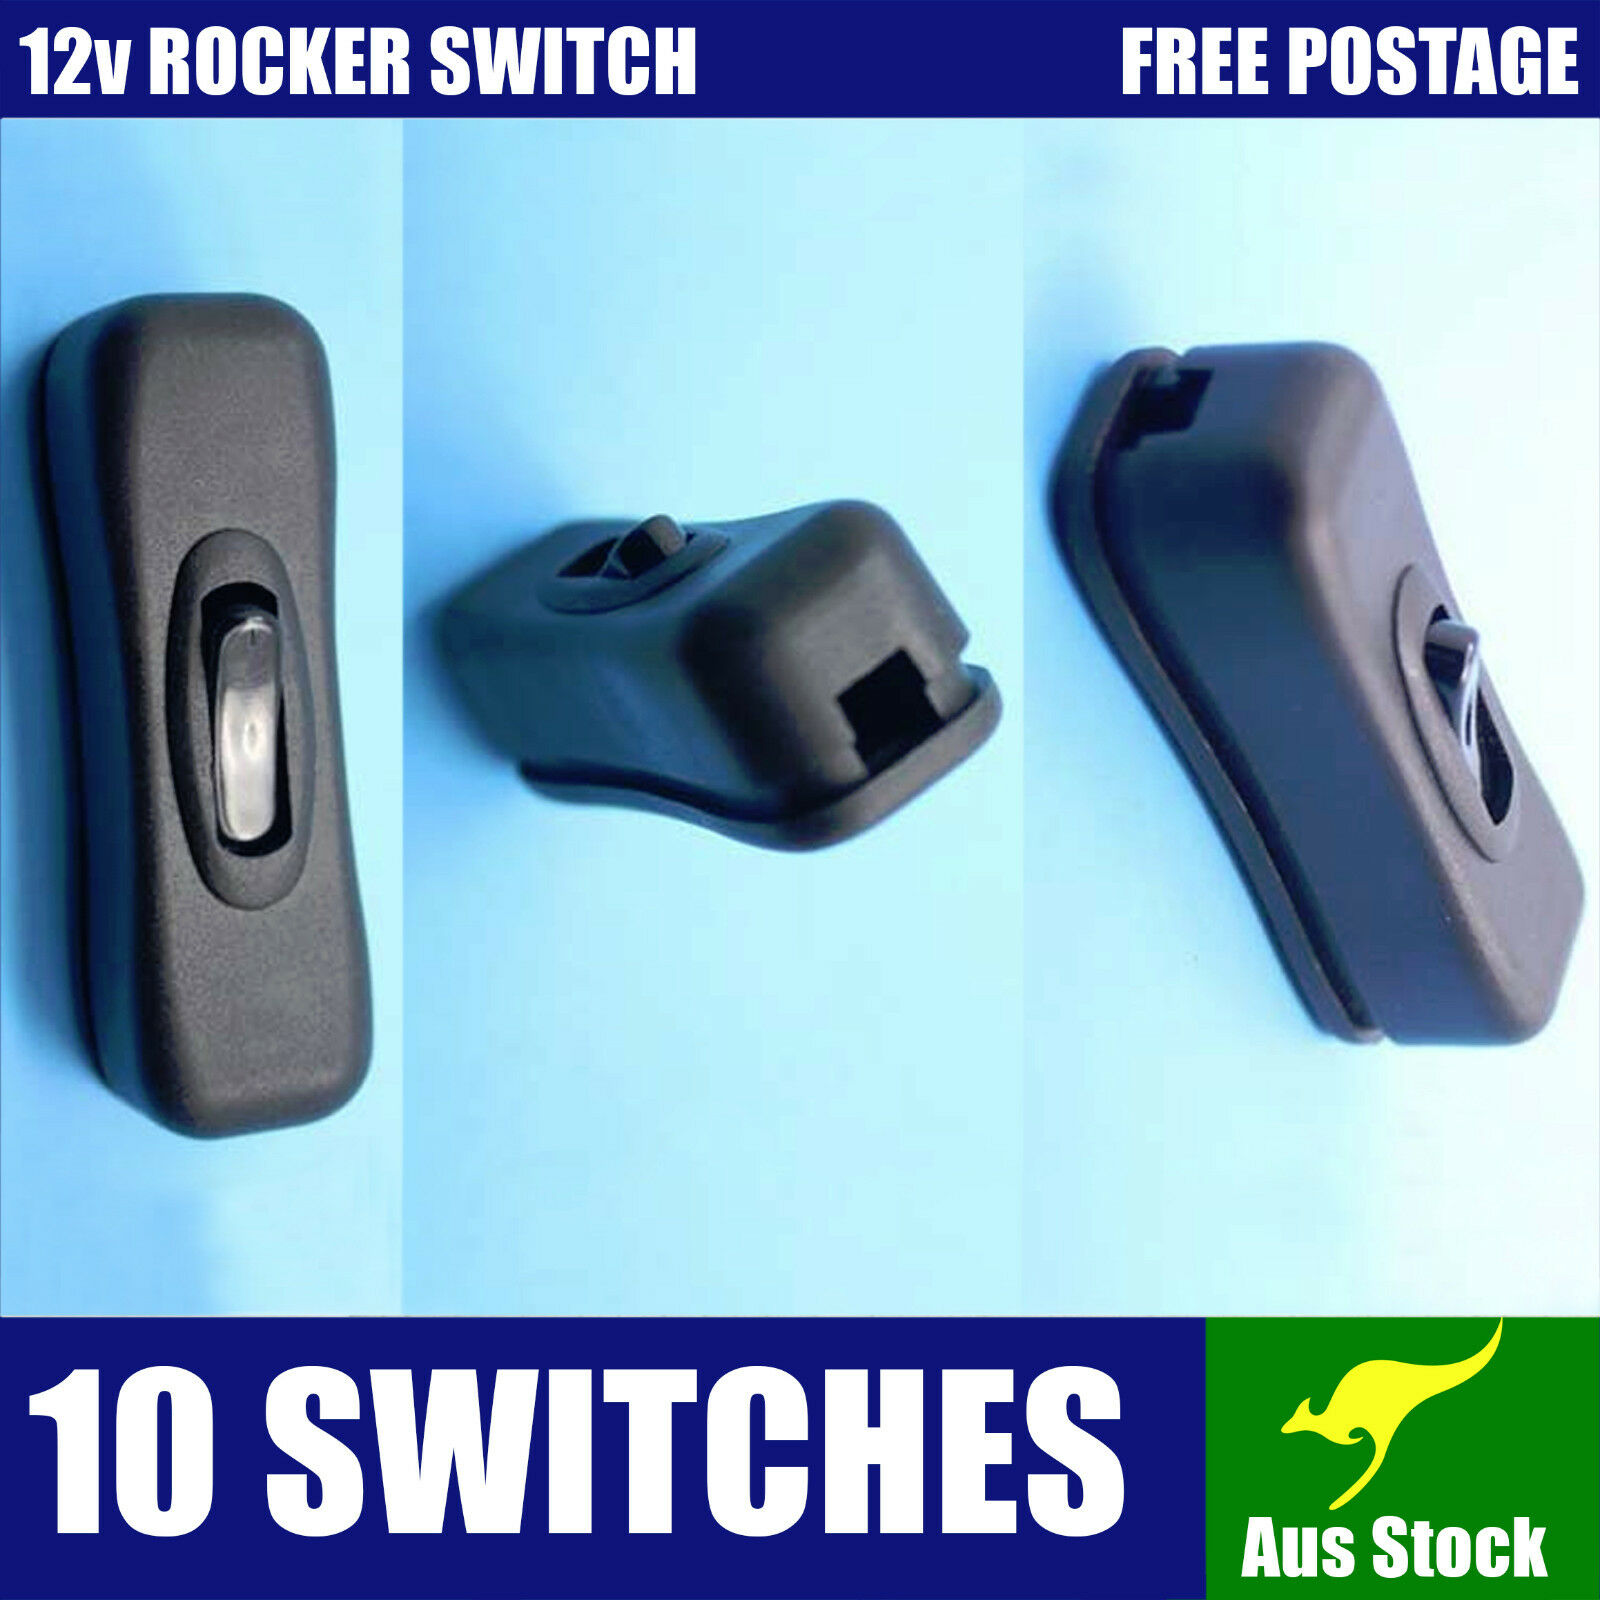 10X 12V INLINE ROCKER SWITCH jayco caravan boat 4wd truck light camping LED 4x4